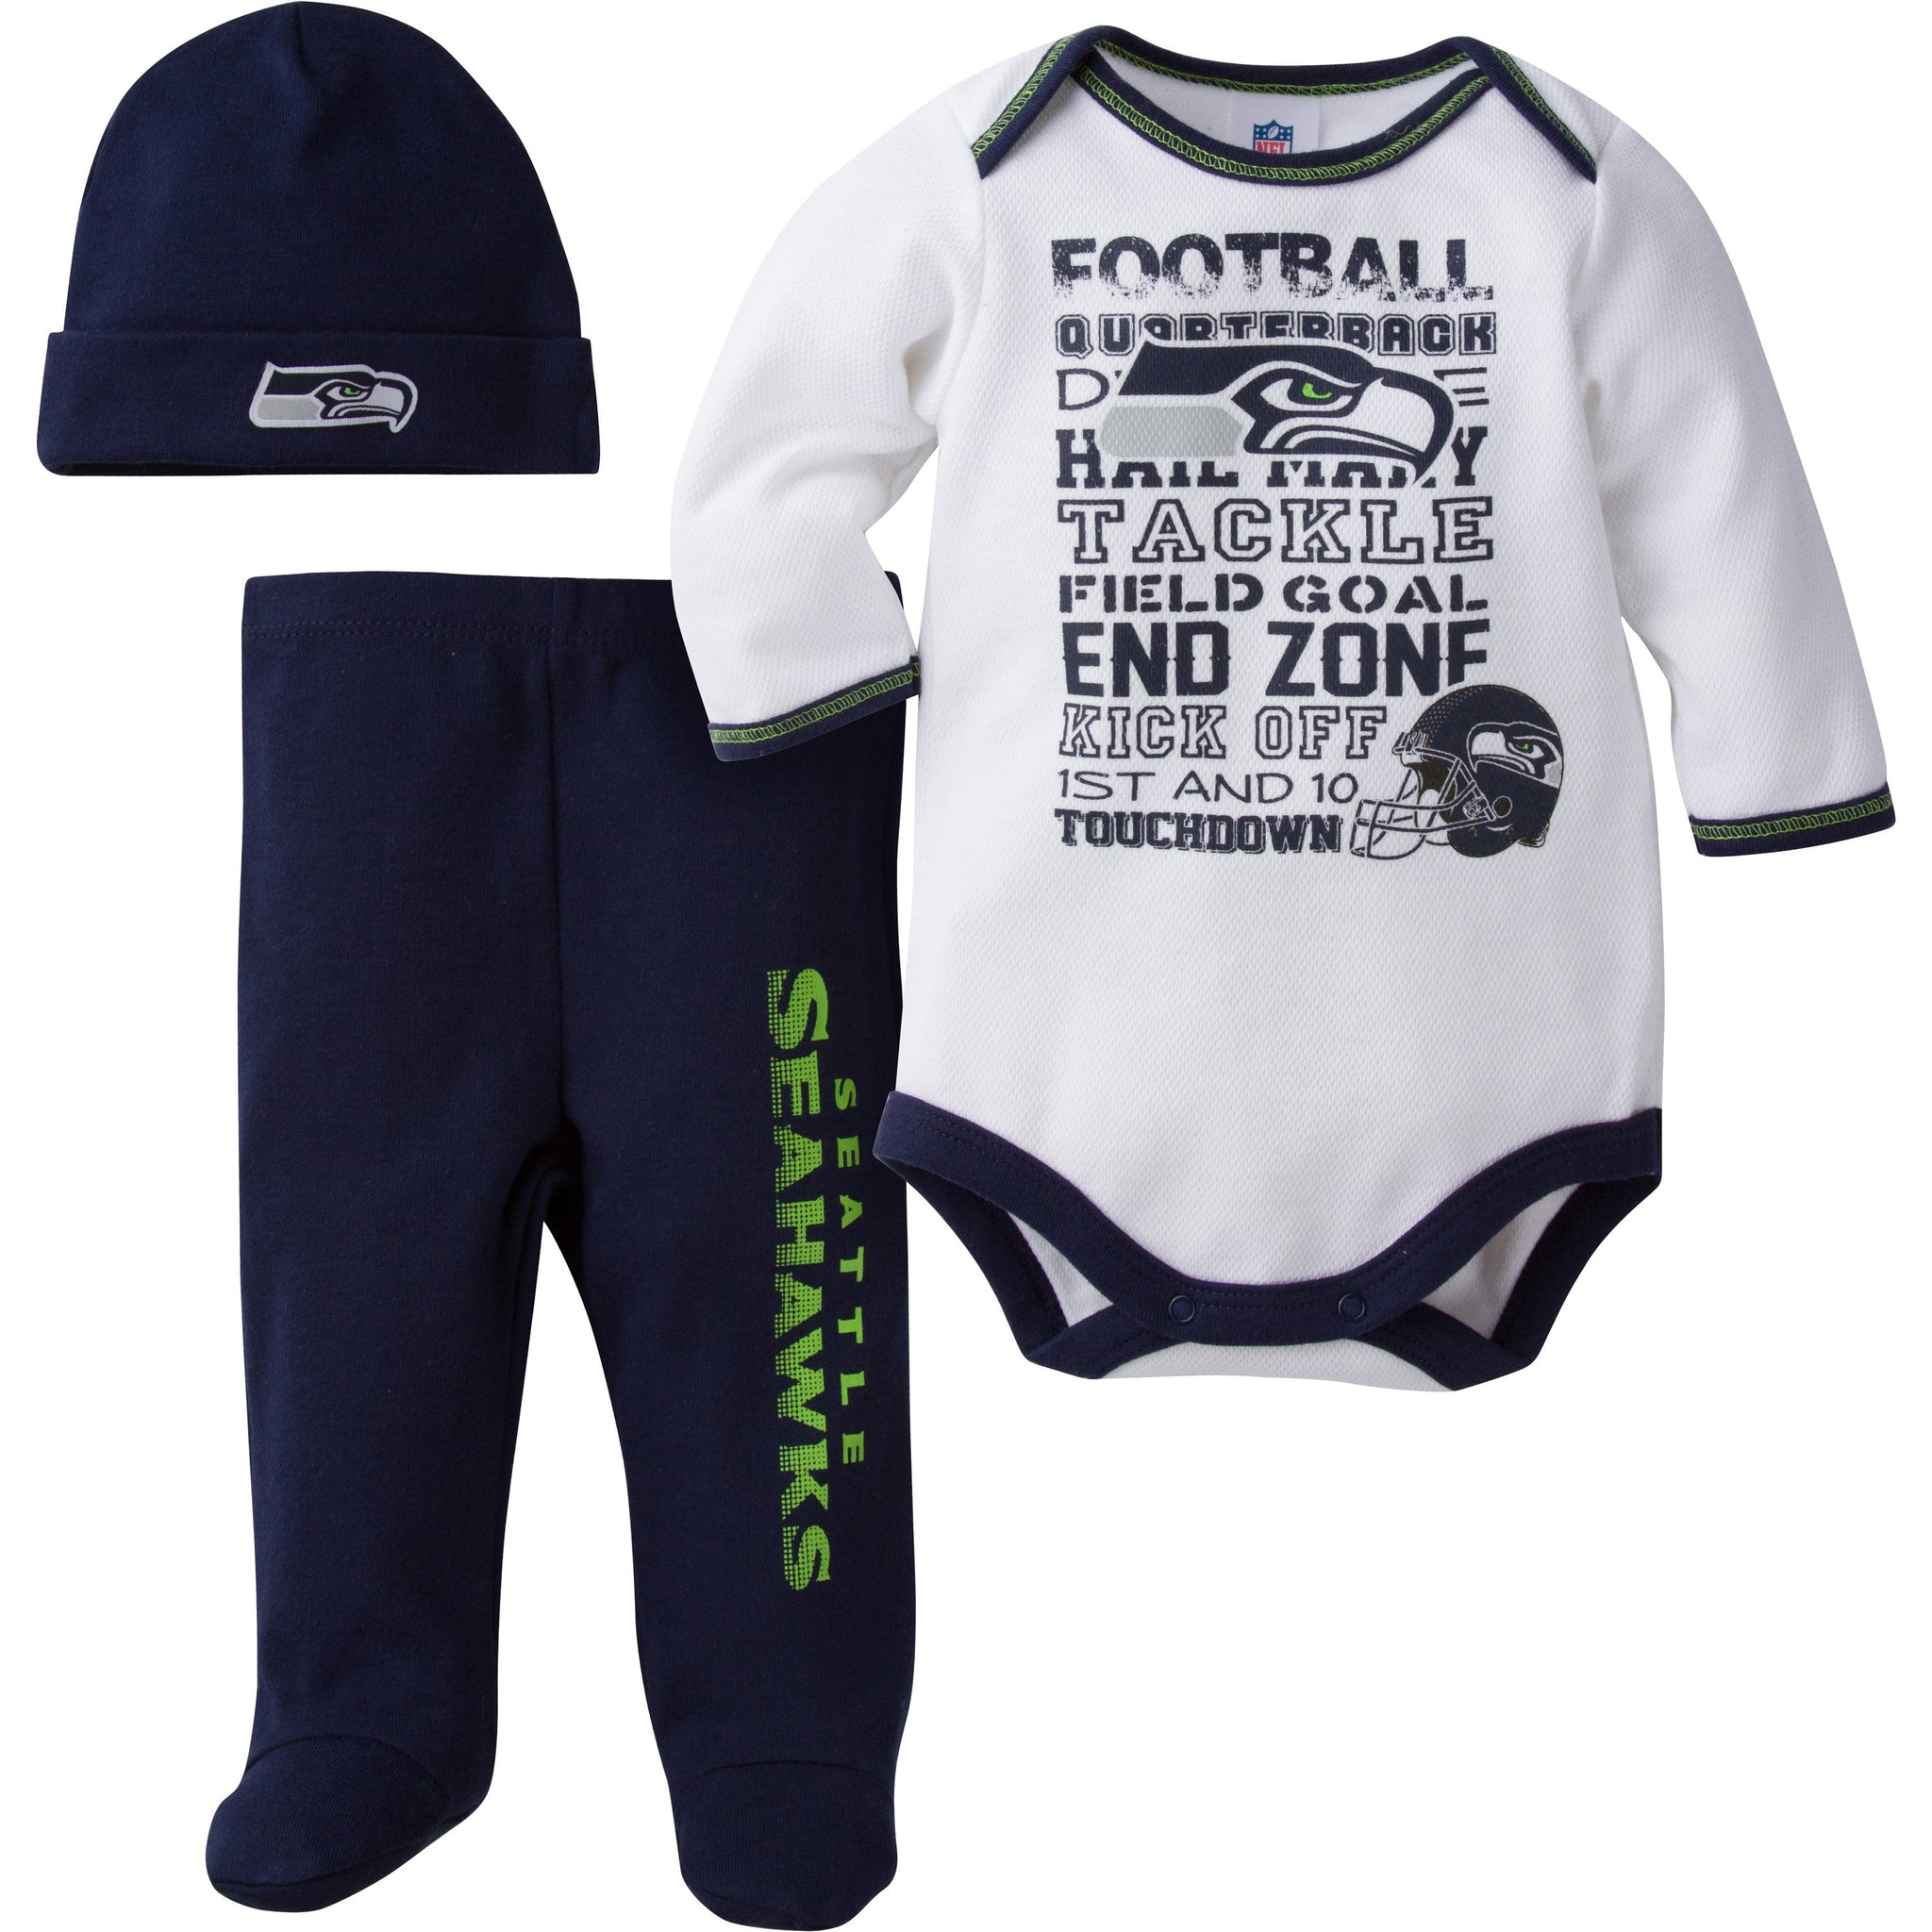 436ebdf4a Seattle Seahawks Baby Clothing - Jerseys, Bodysuits & Sleepers ...